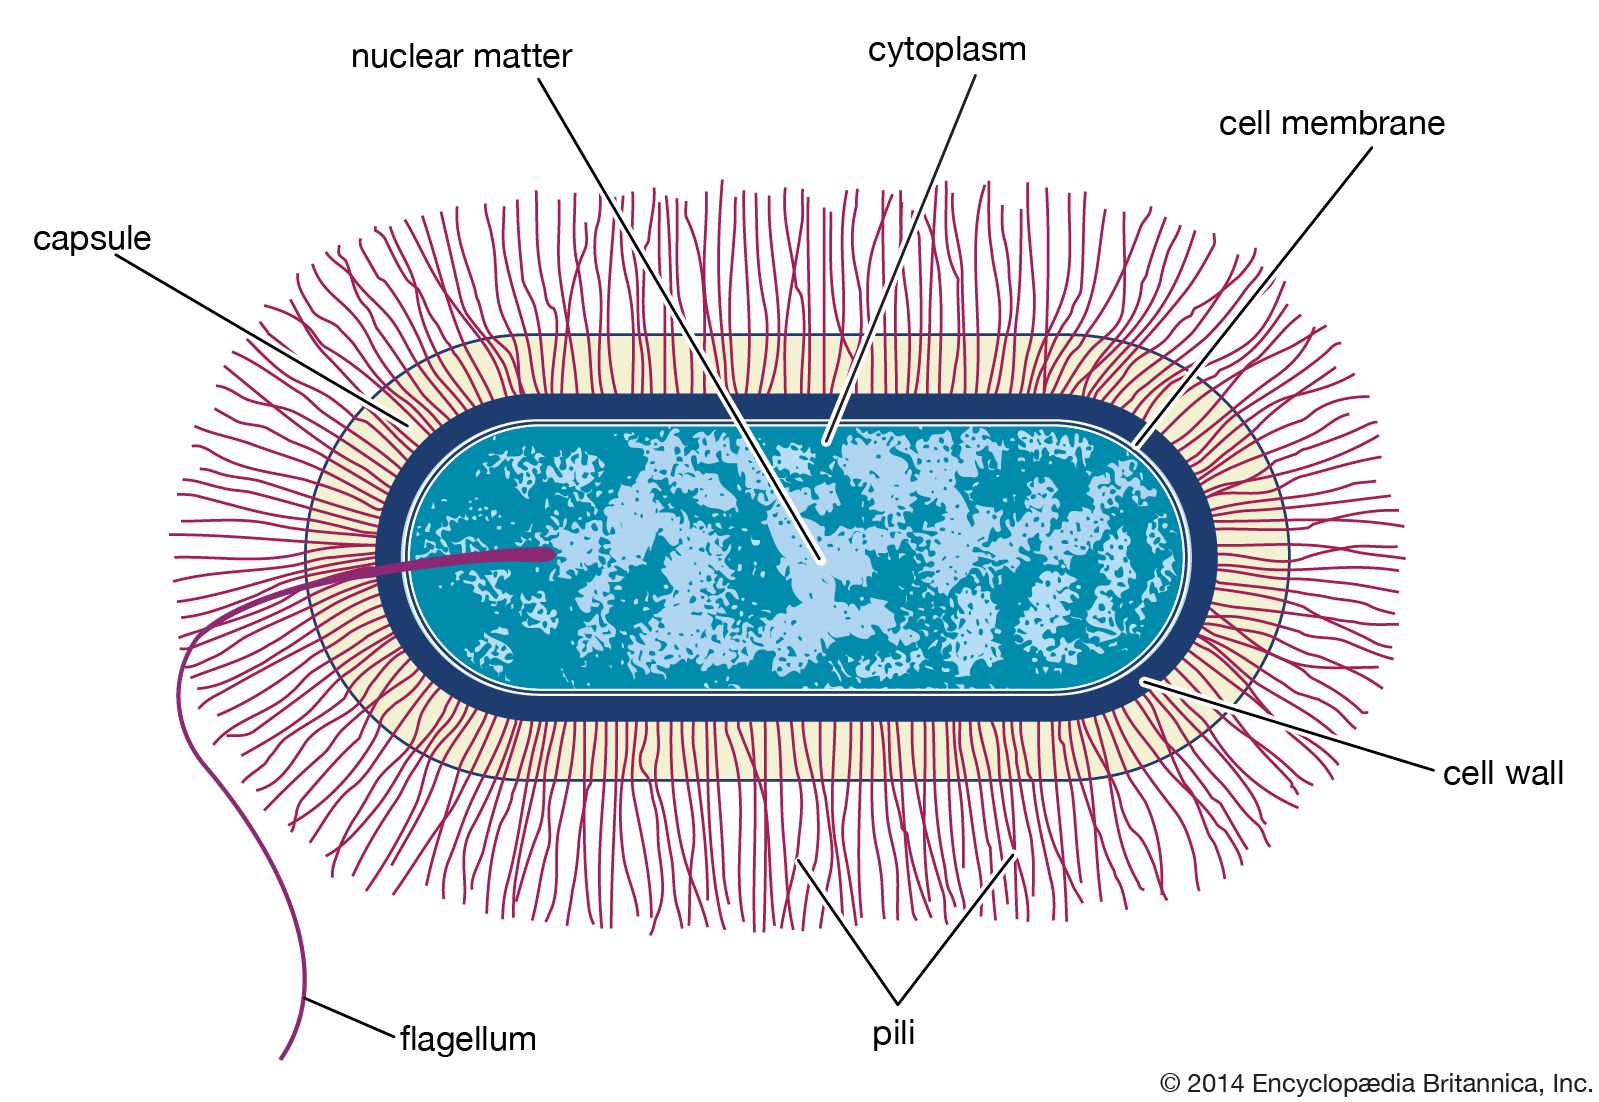 Pin by Science Education on Cells Bacillus, Cells